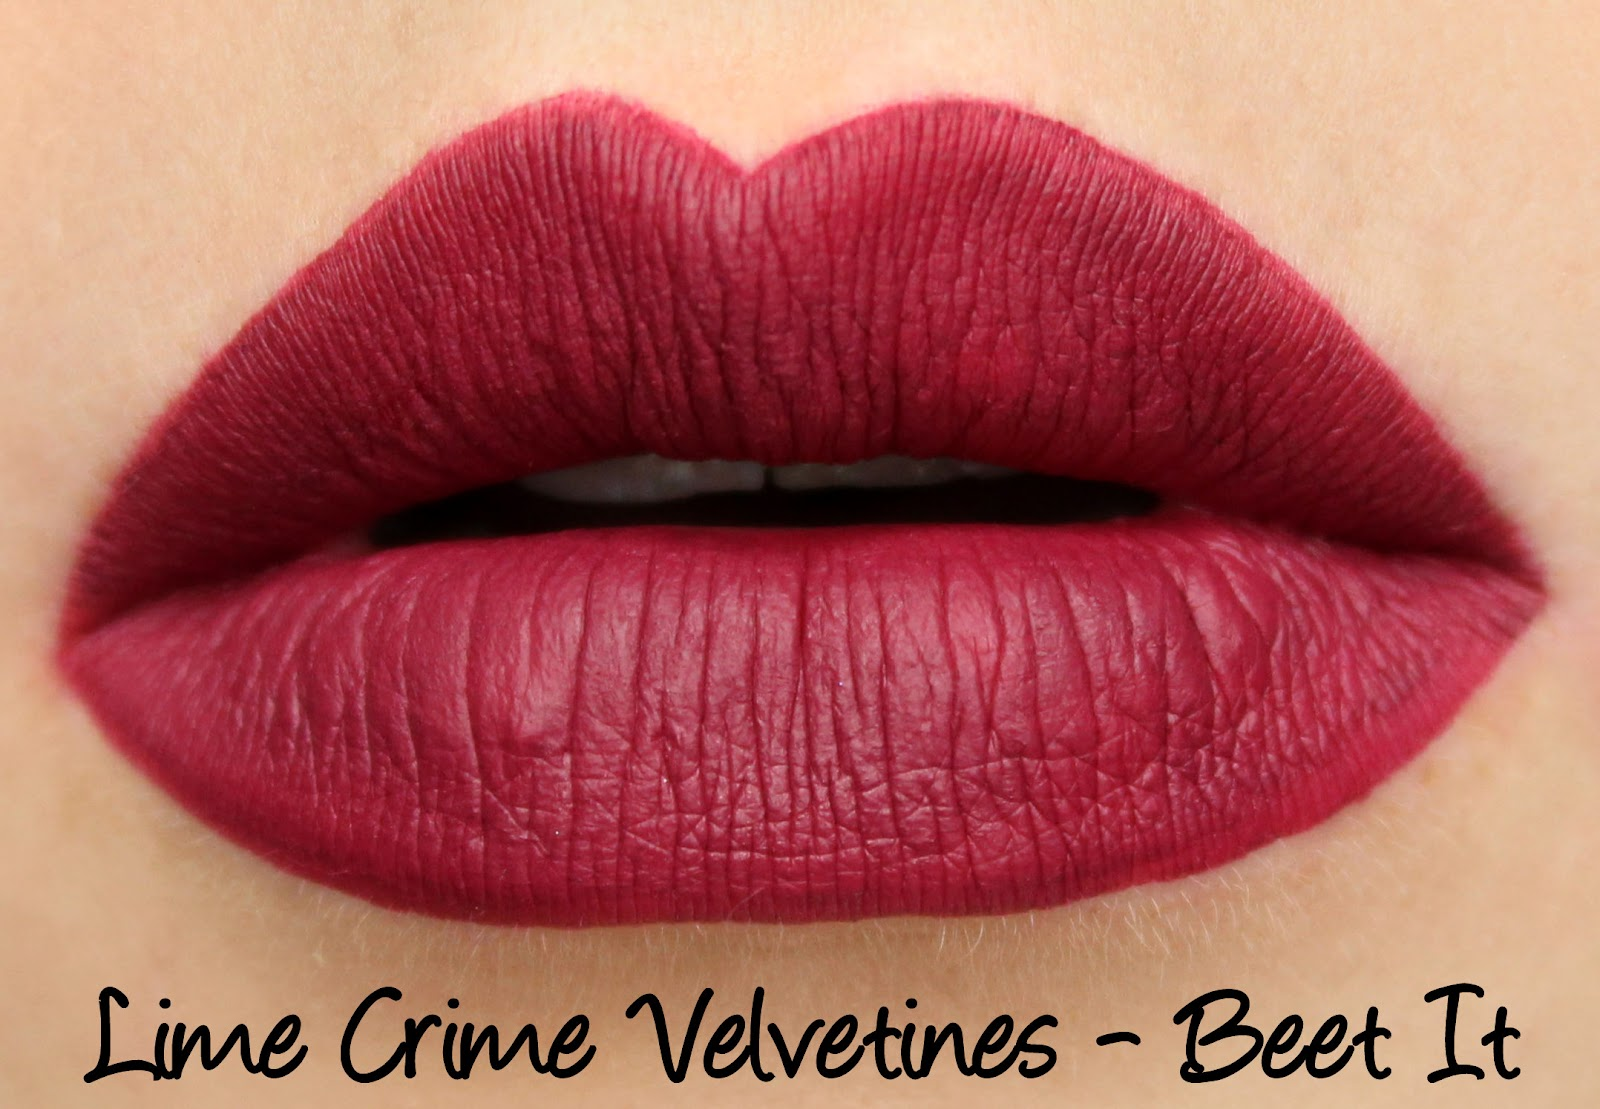 Lime Crime Holiday Velvetines Trio - Buffy, Beet It and Peacock ...